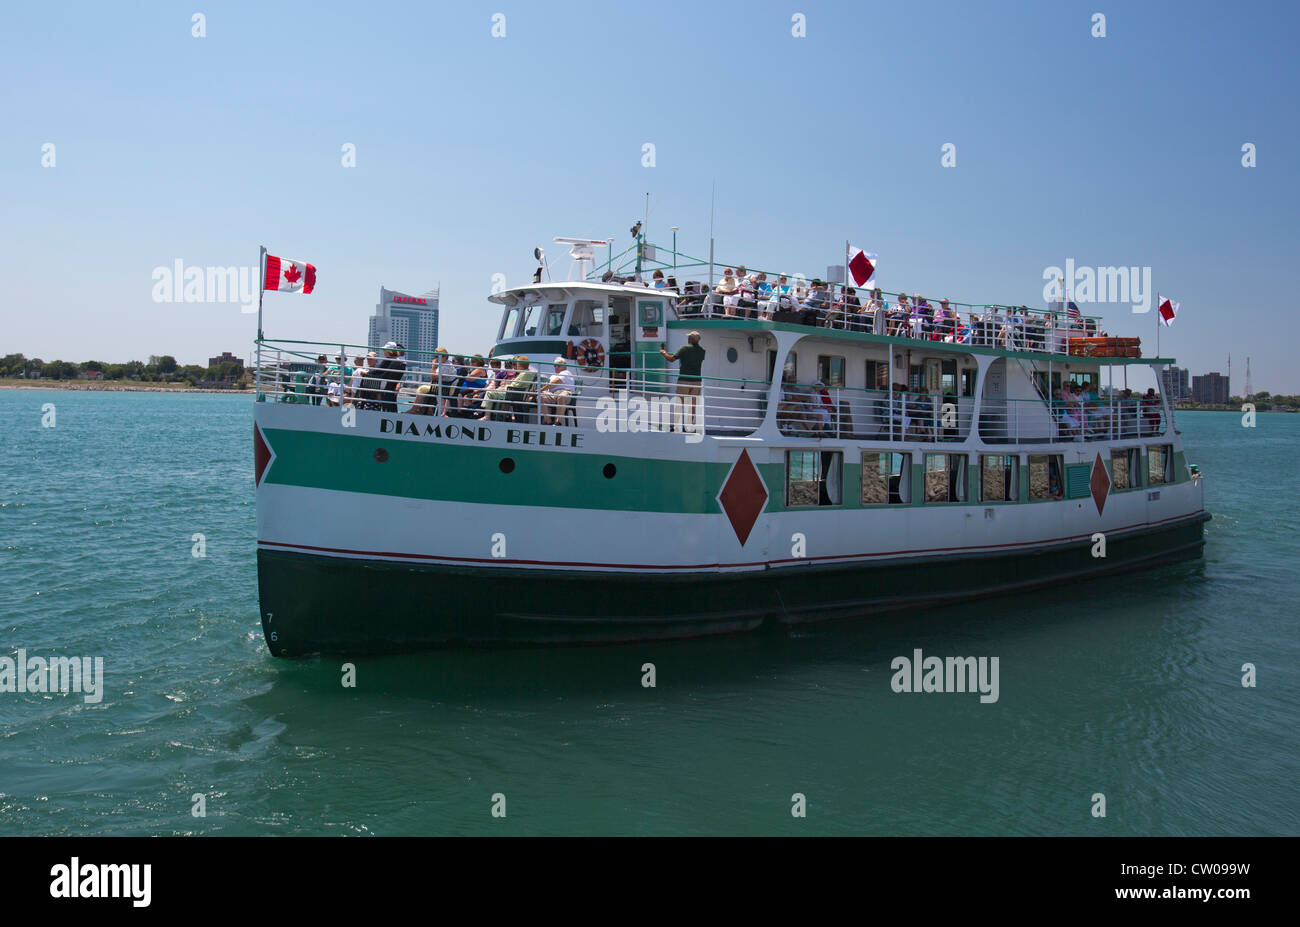 Cruise Boat on the Detroit River - Stock Image